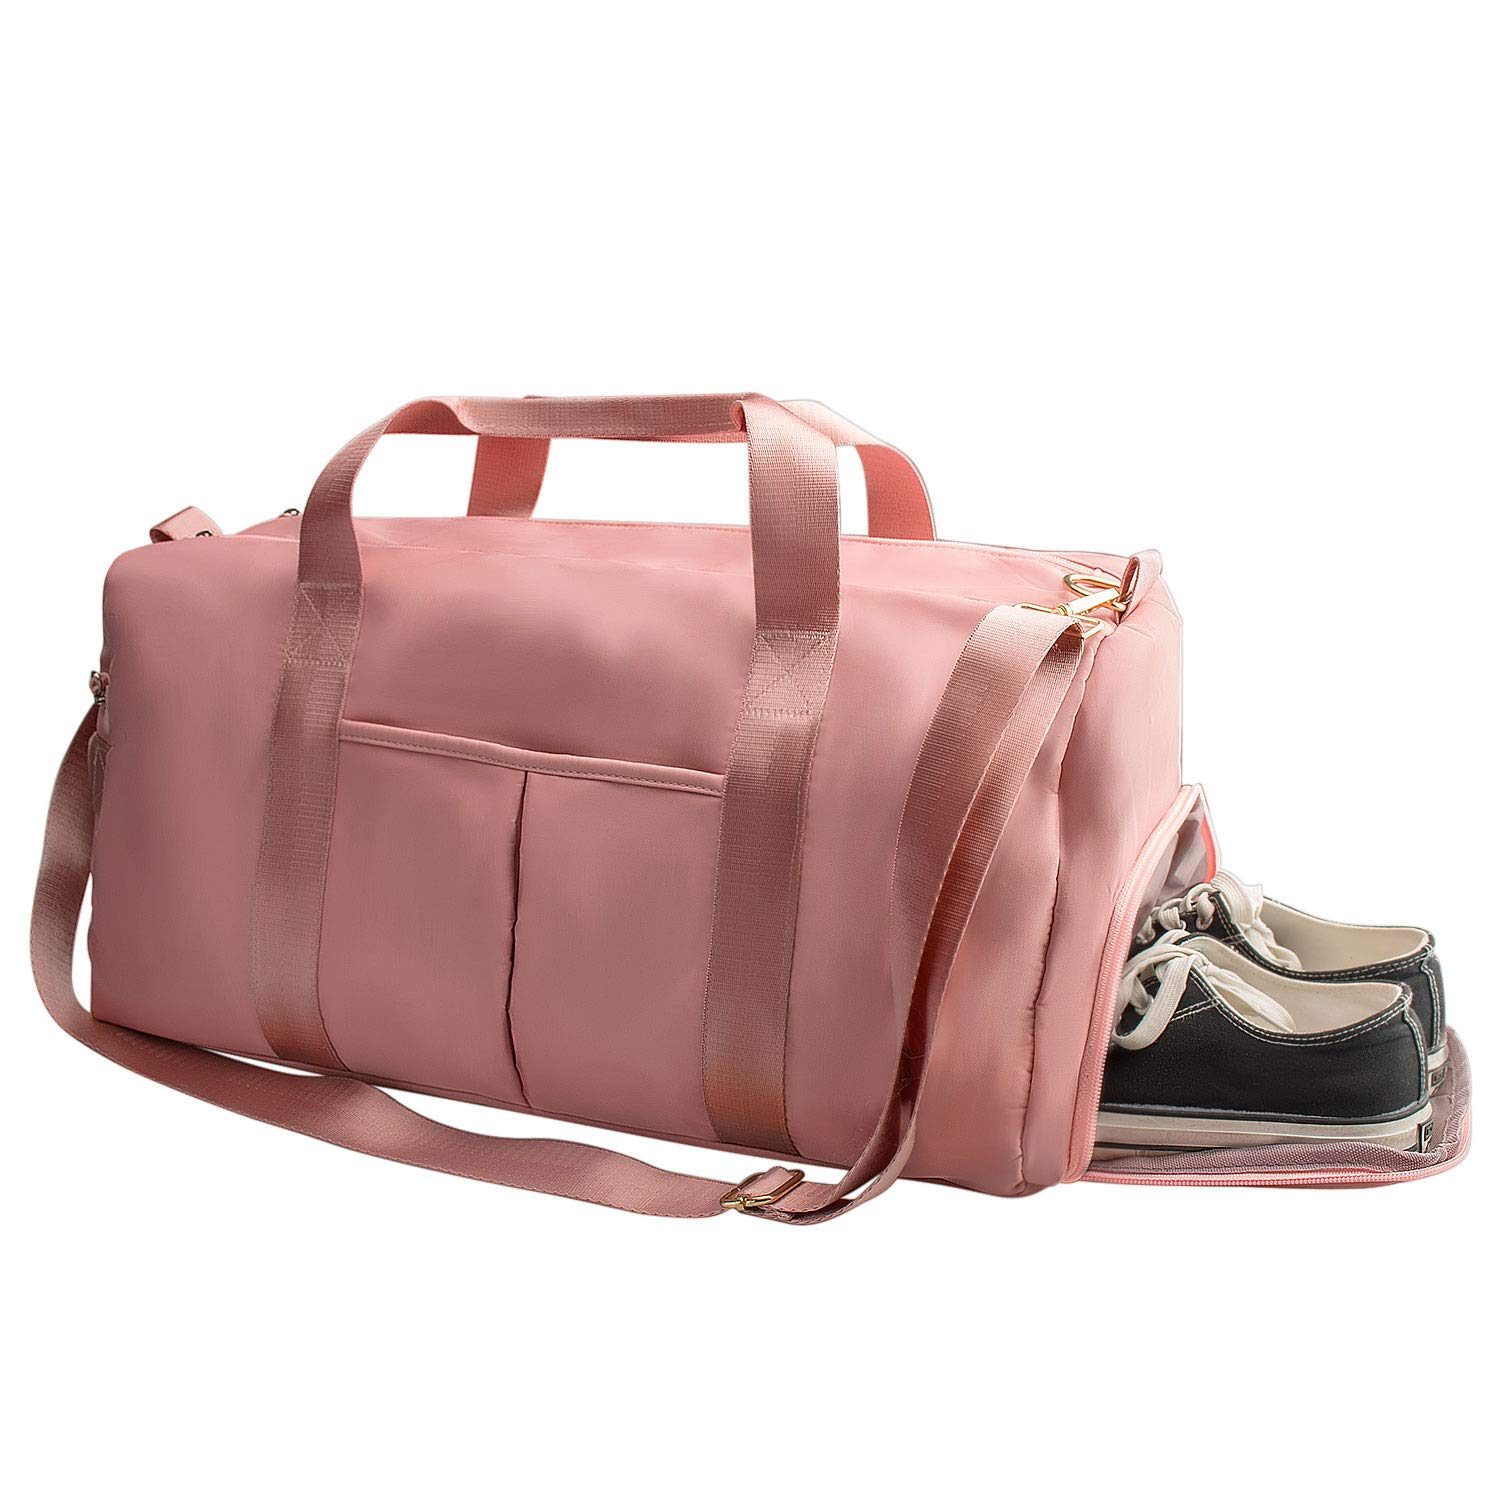 Suruid Gym Bag for Women, Workout Duffel Bag Shoe Compartment, Sports Gym Travel Bags with Dry Wet Pocket and Shoe Compartment – Pink